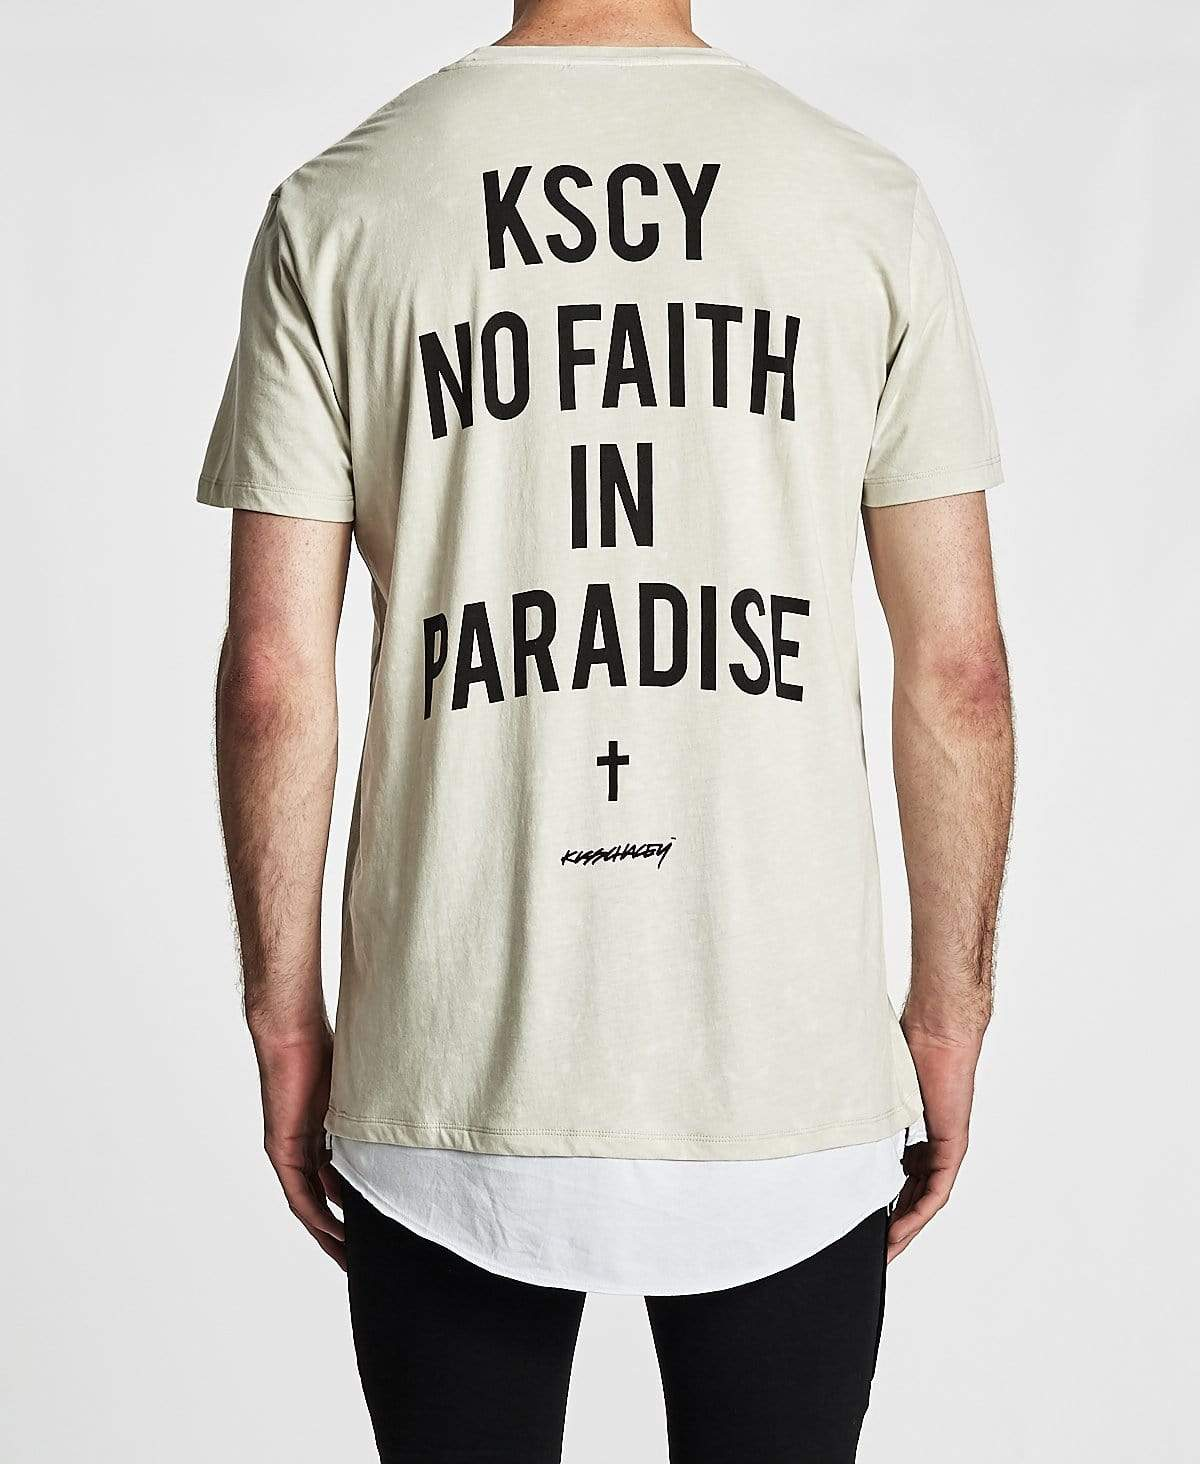 Kiss Chacey Paradise Layered Hem Relaxed Fit T-Shirt Acid Stone